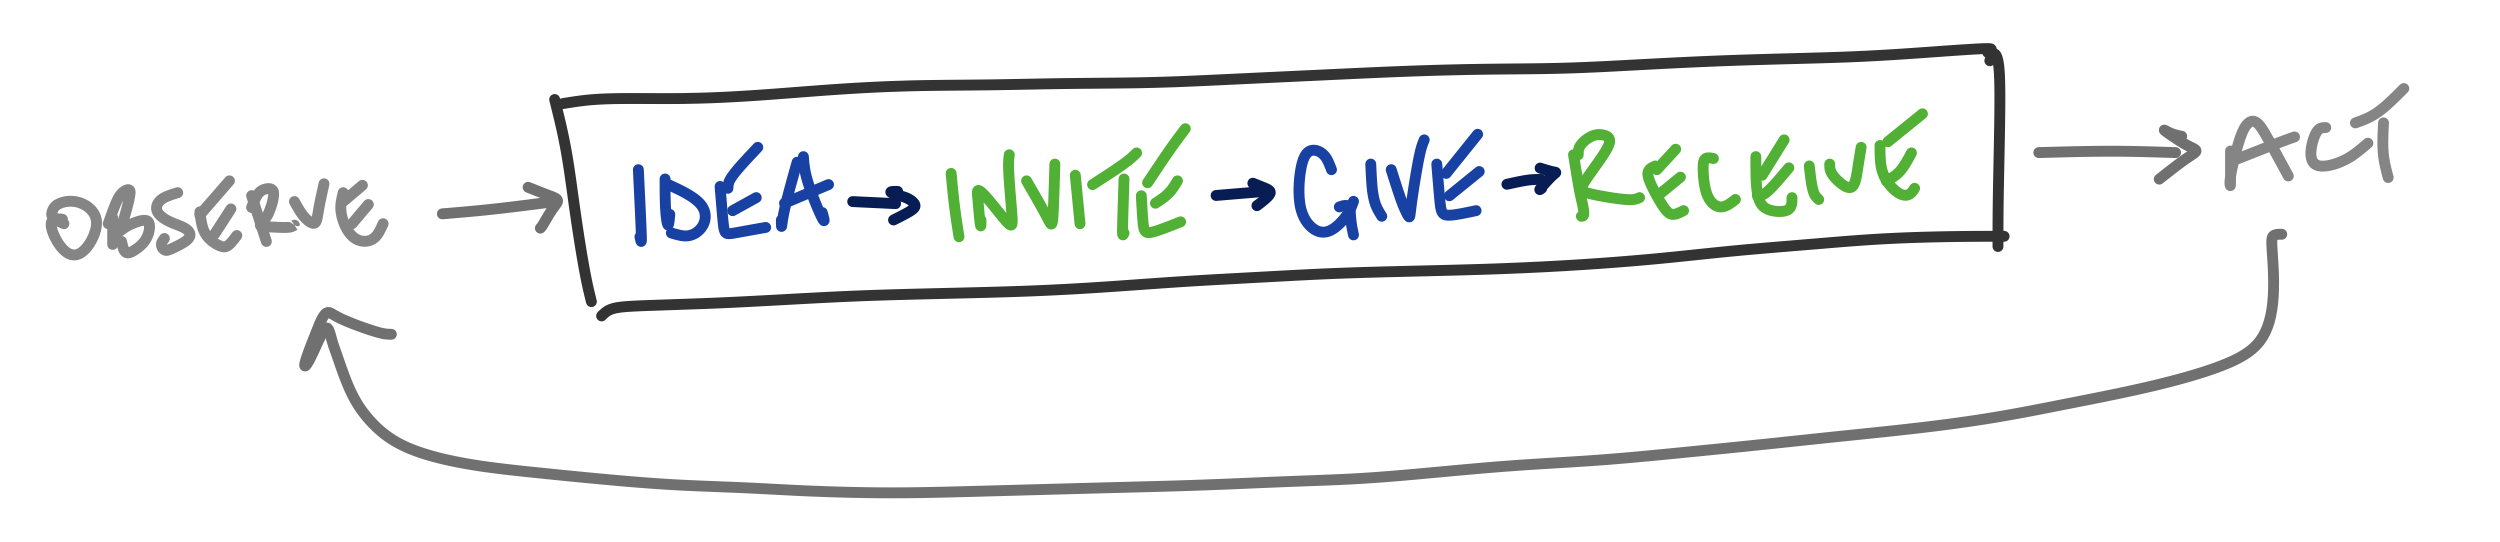 The Feedback Cycle: Idea, Invite, Give, Receive